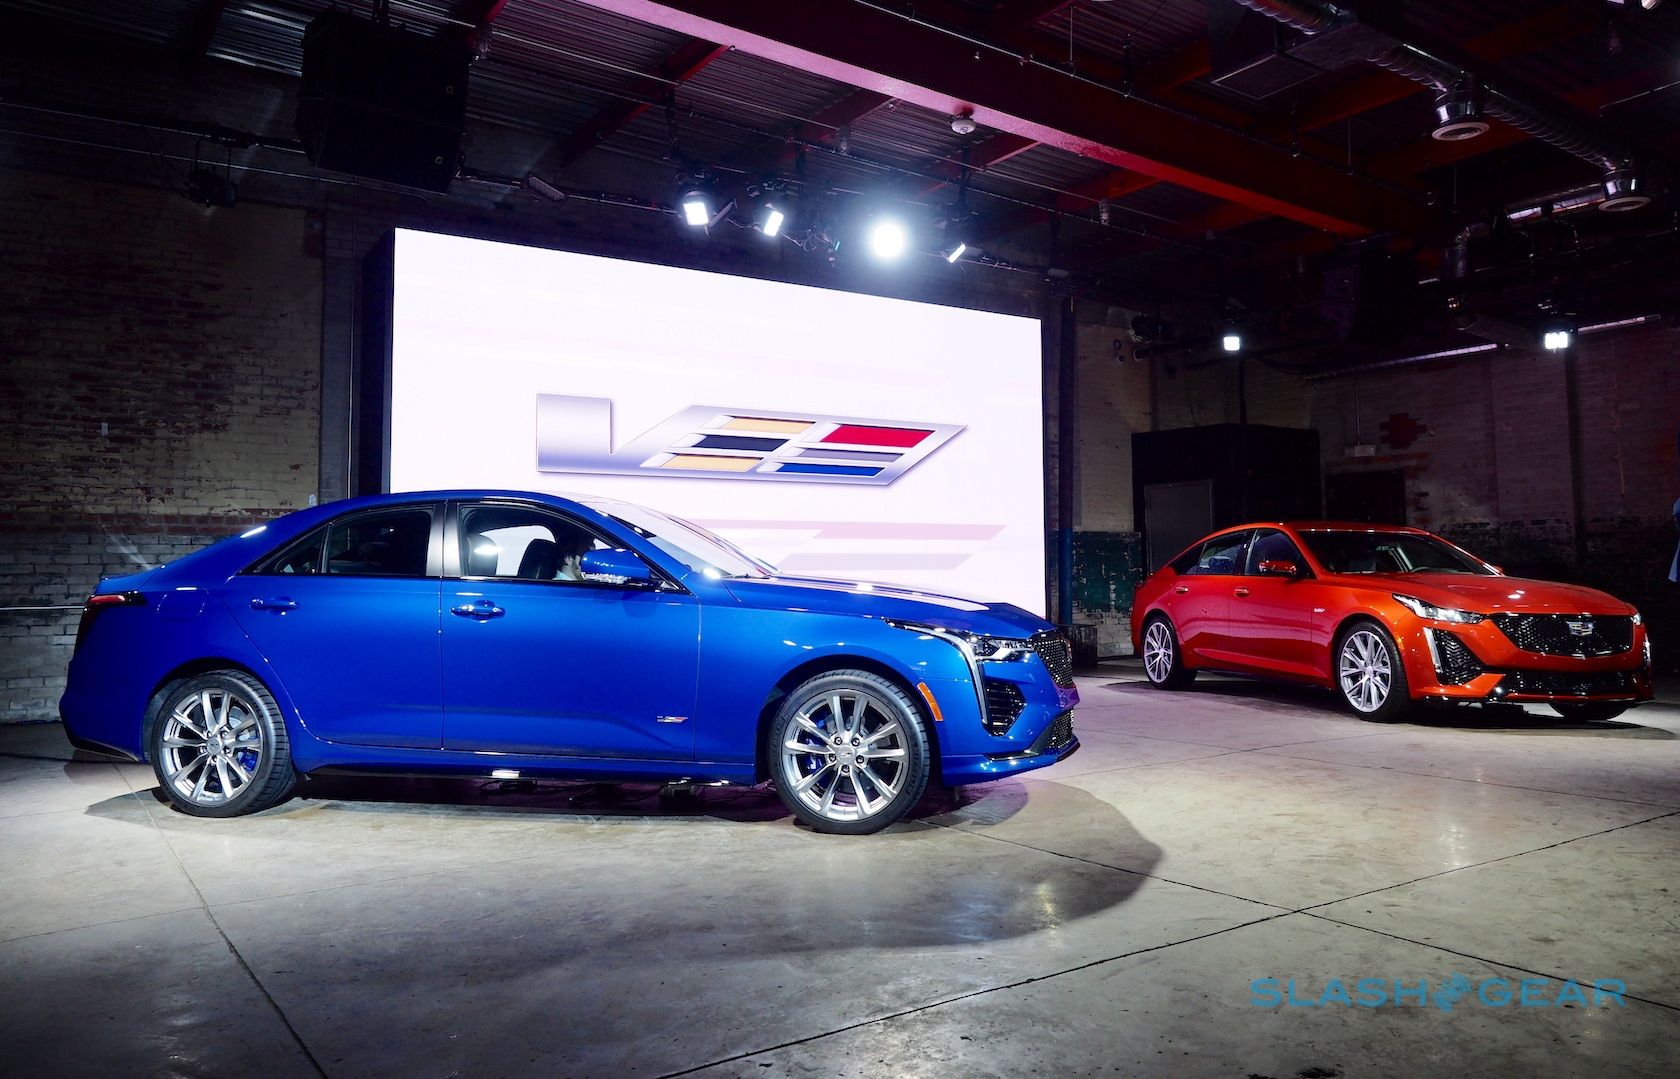 2020 Cadillac CT4-V and CT5-V Gallery - SlashGear